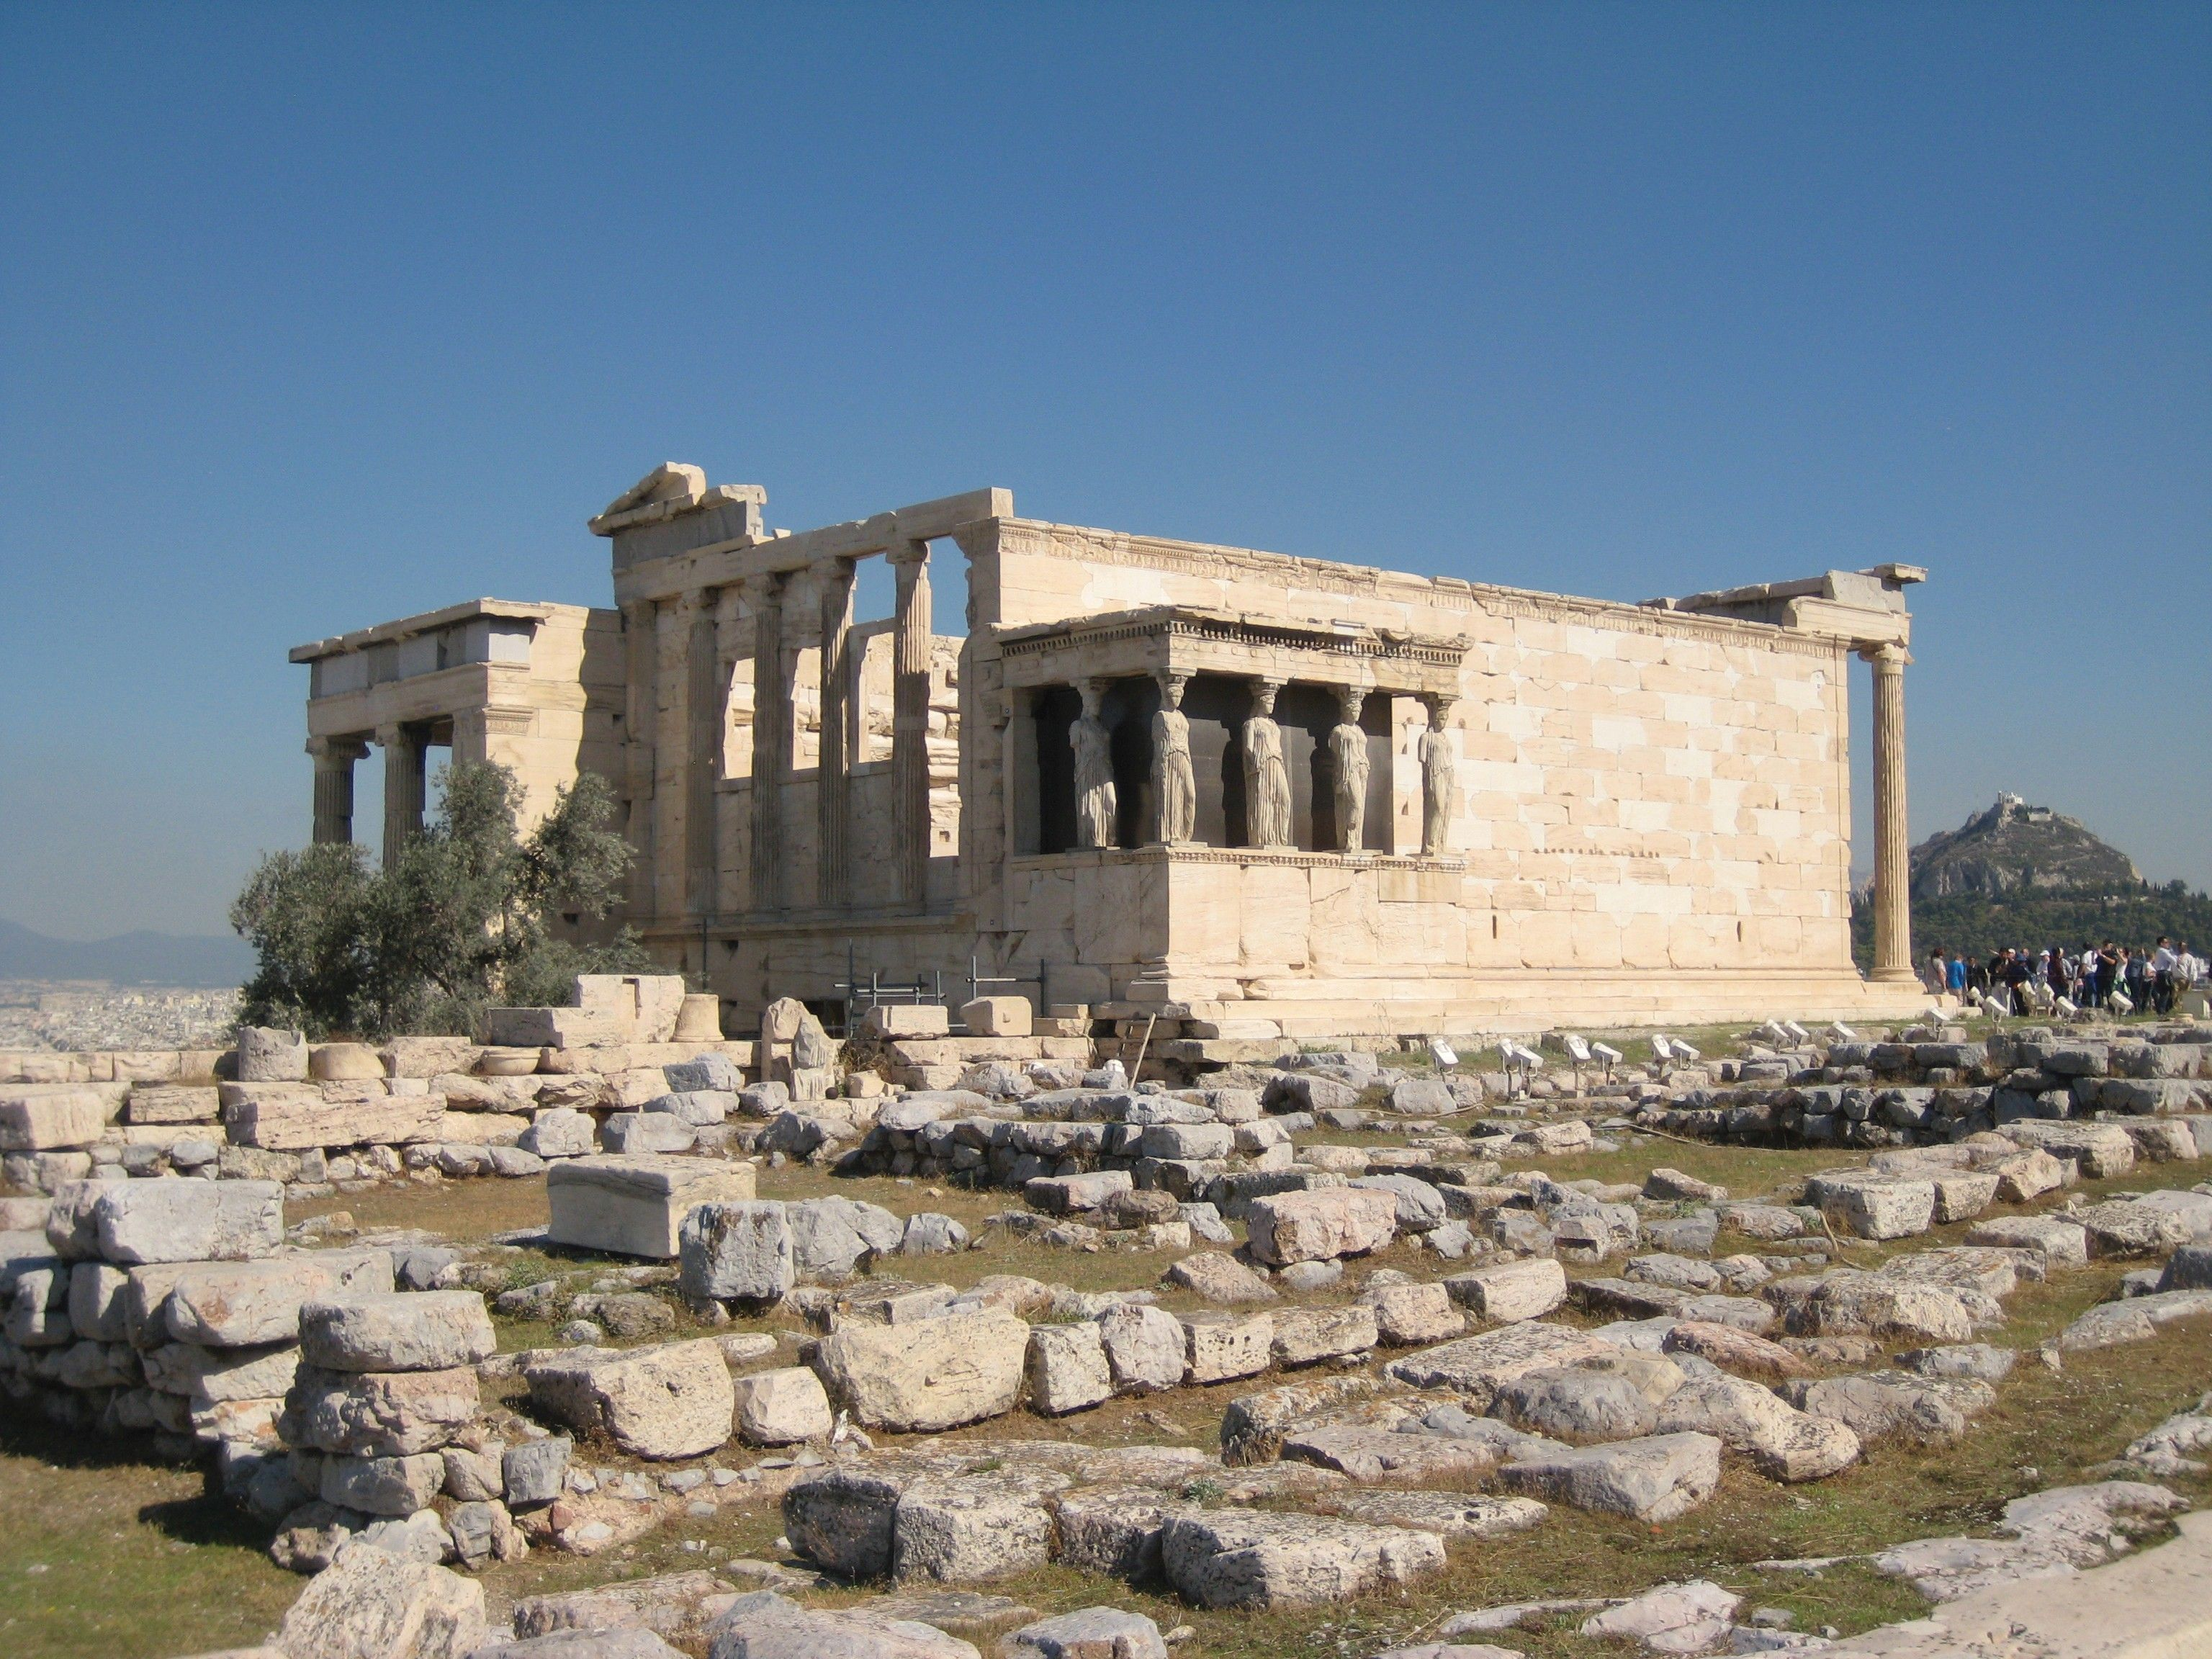 The Erechtheion was a Greek temple built in the late fifth century BC on the north site of the Acropolis.